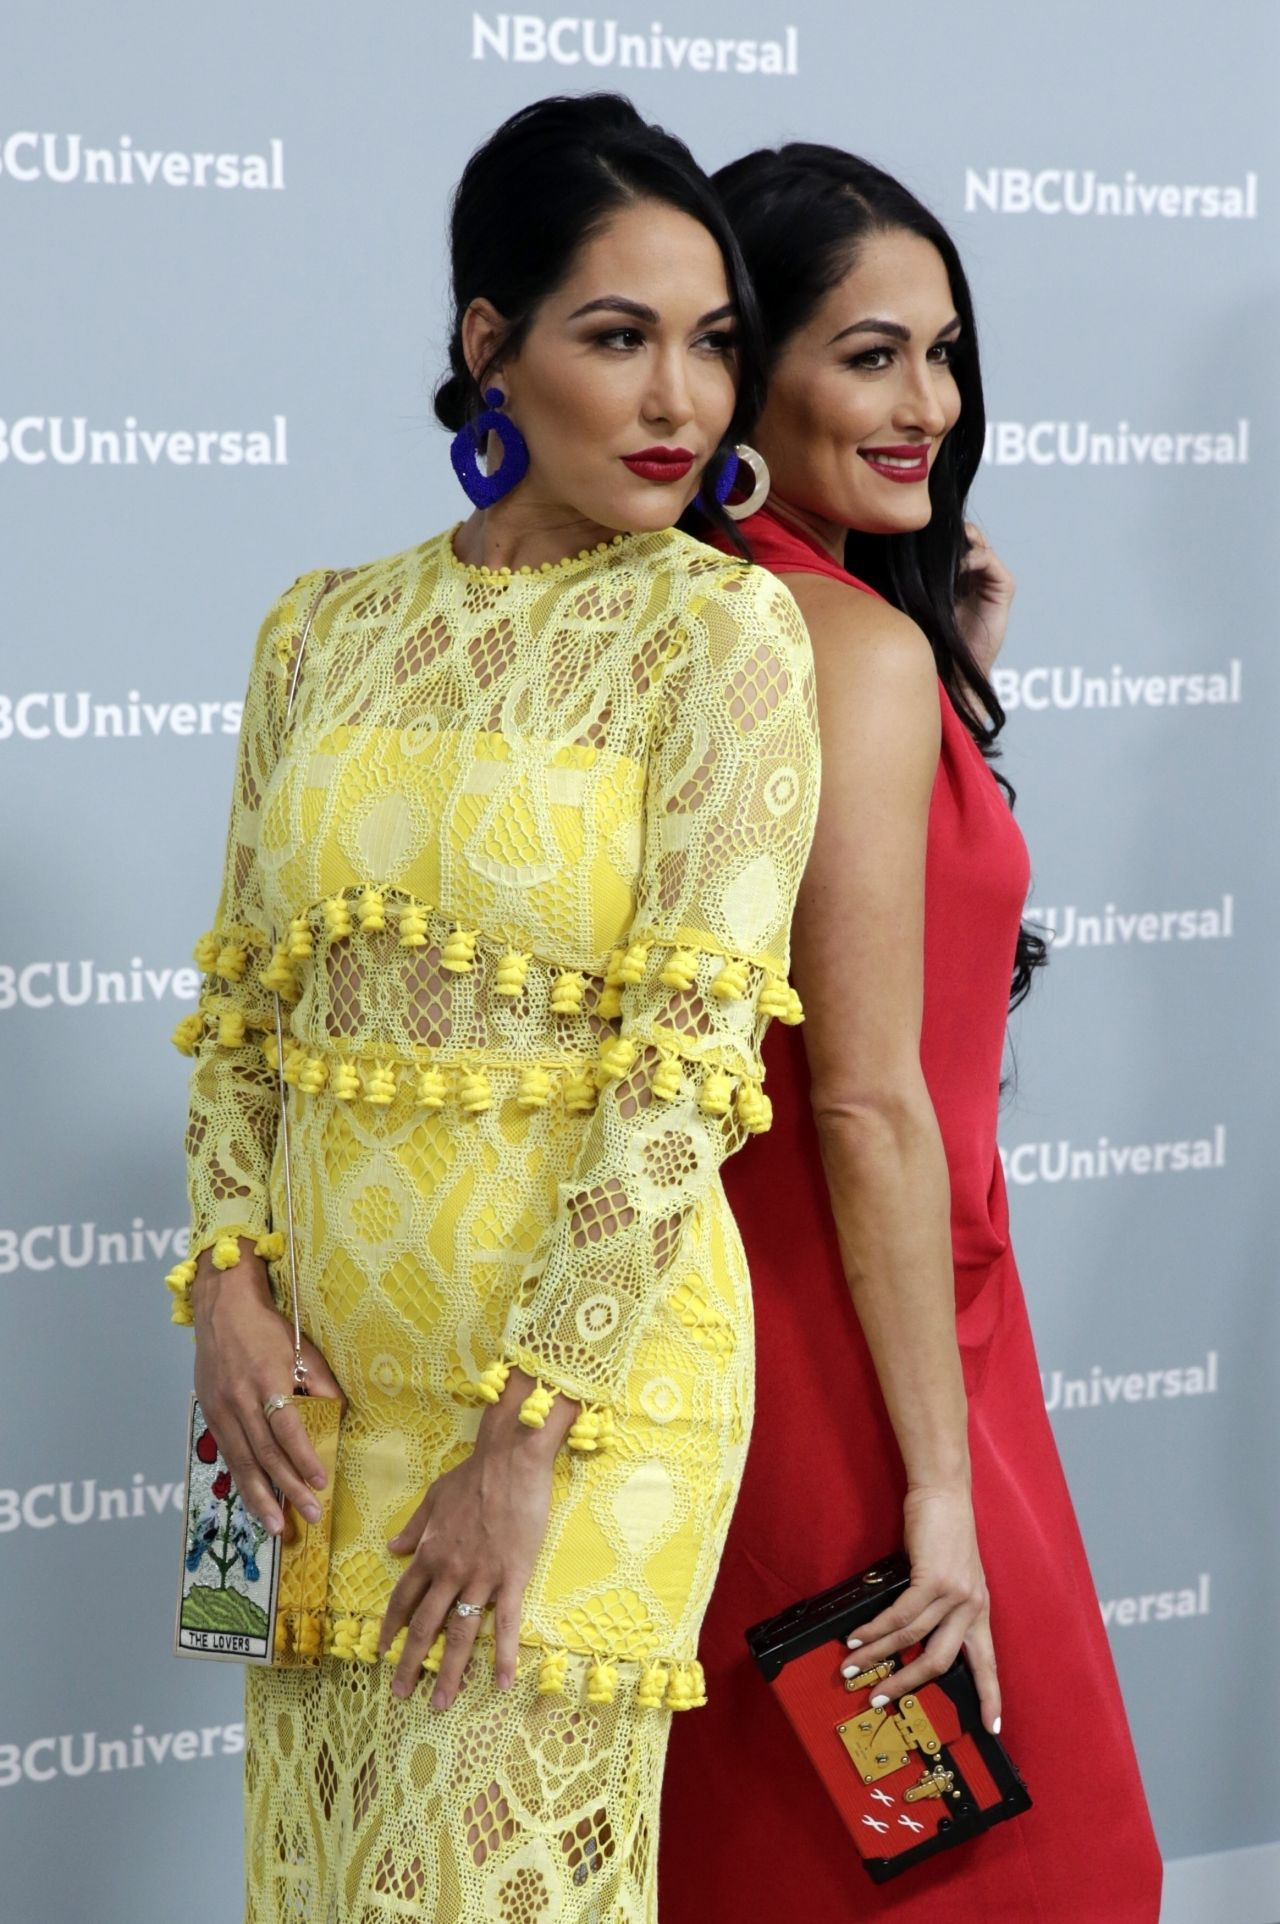 Nikki Bella And Brie Bella 2018 Nbcuniversal Upfront In Nyc